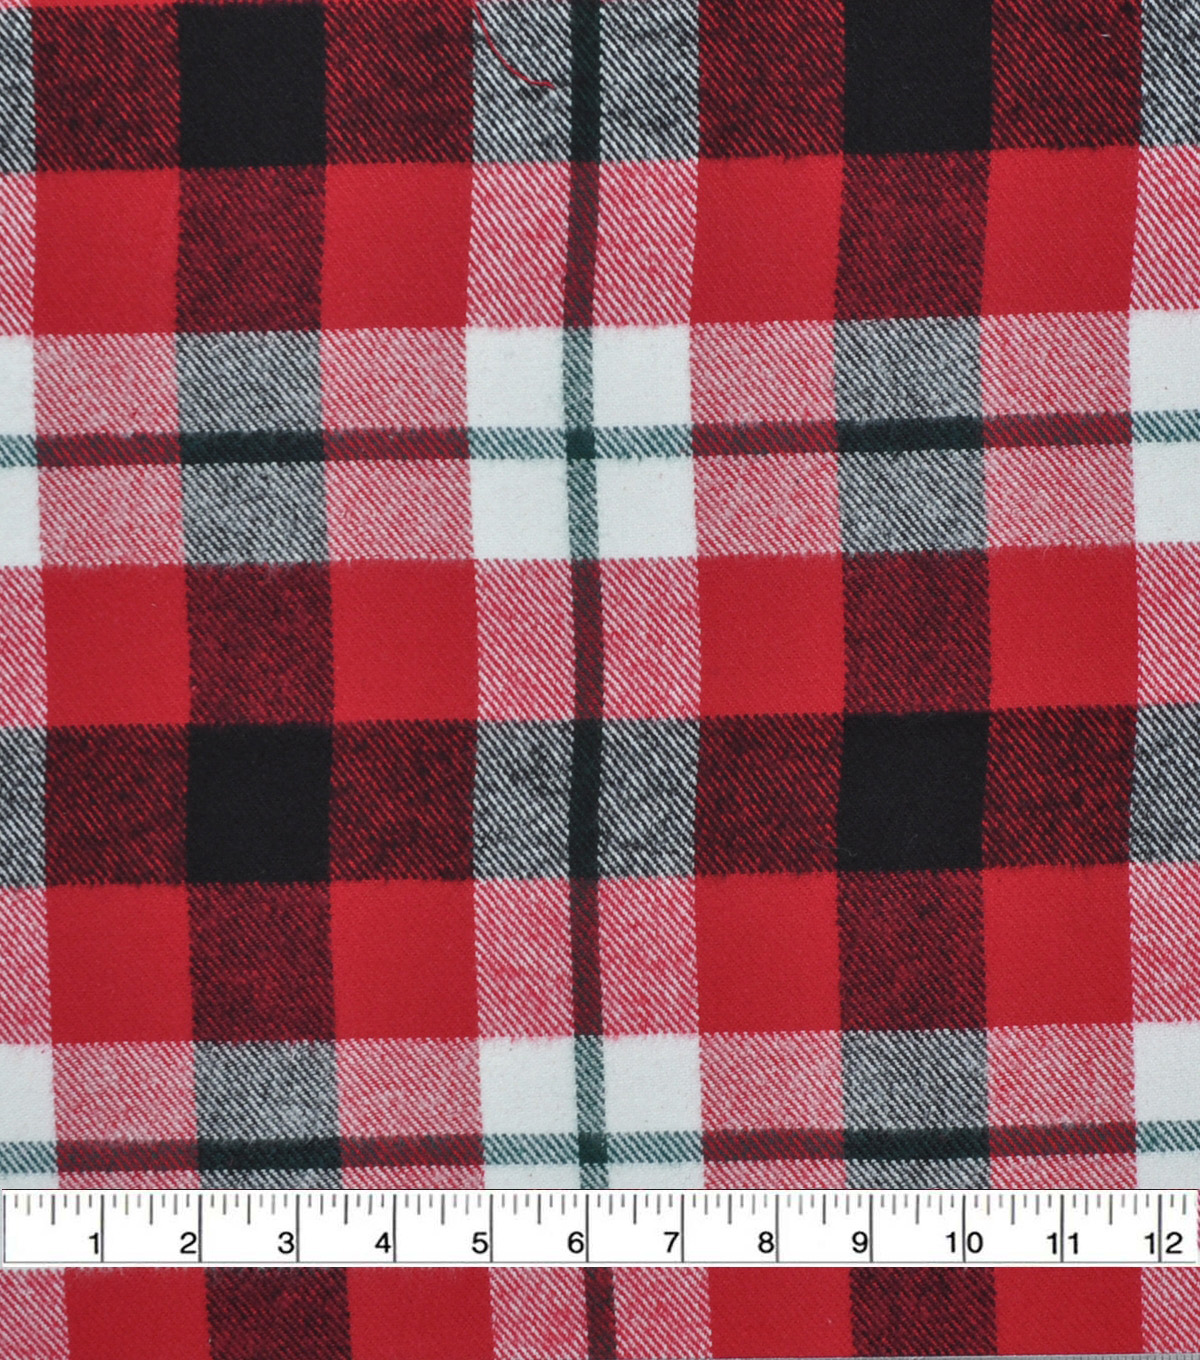 Plaiditudes Brushed Cotton Fabric-Red, Green, Black & Ivory Grid Plaid